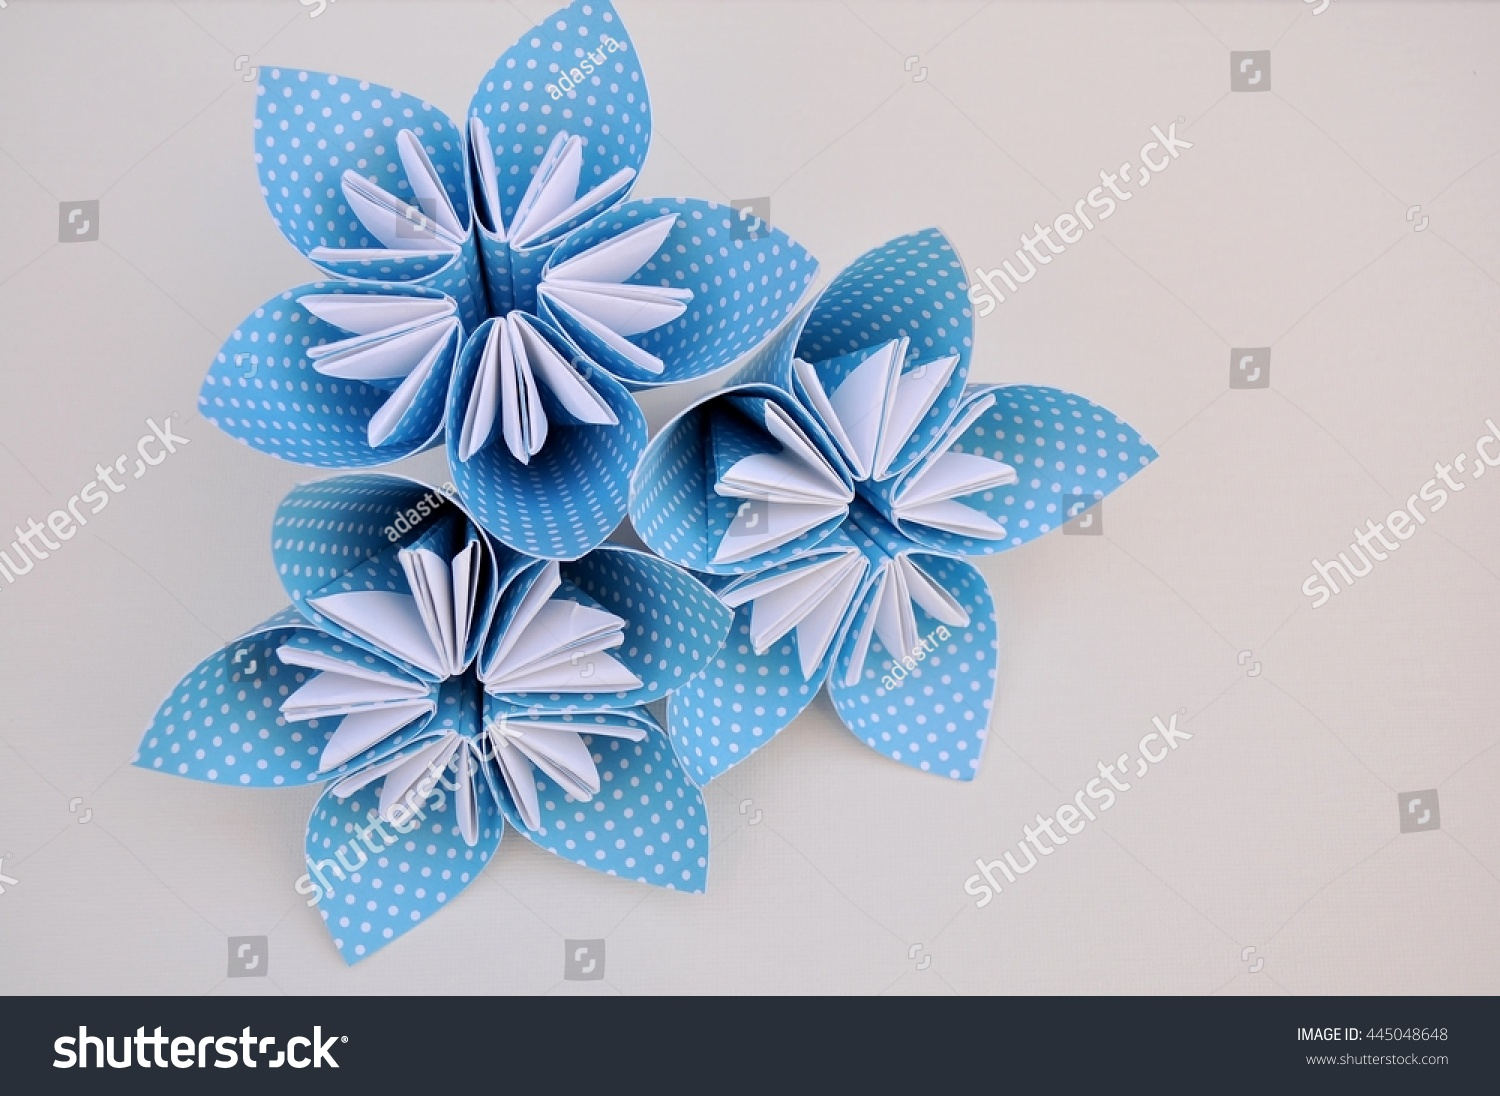 Blue Origami Flowers Bouquet Made Polka Stock Photo Royalty Free